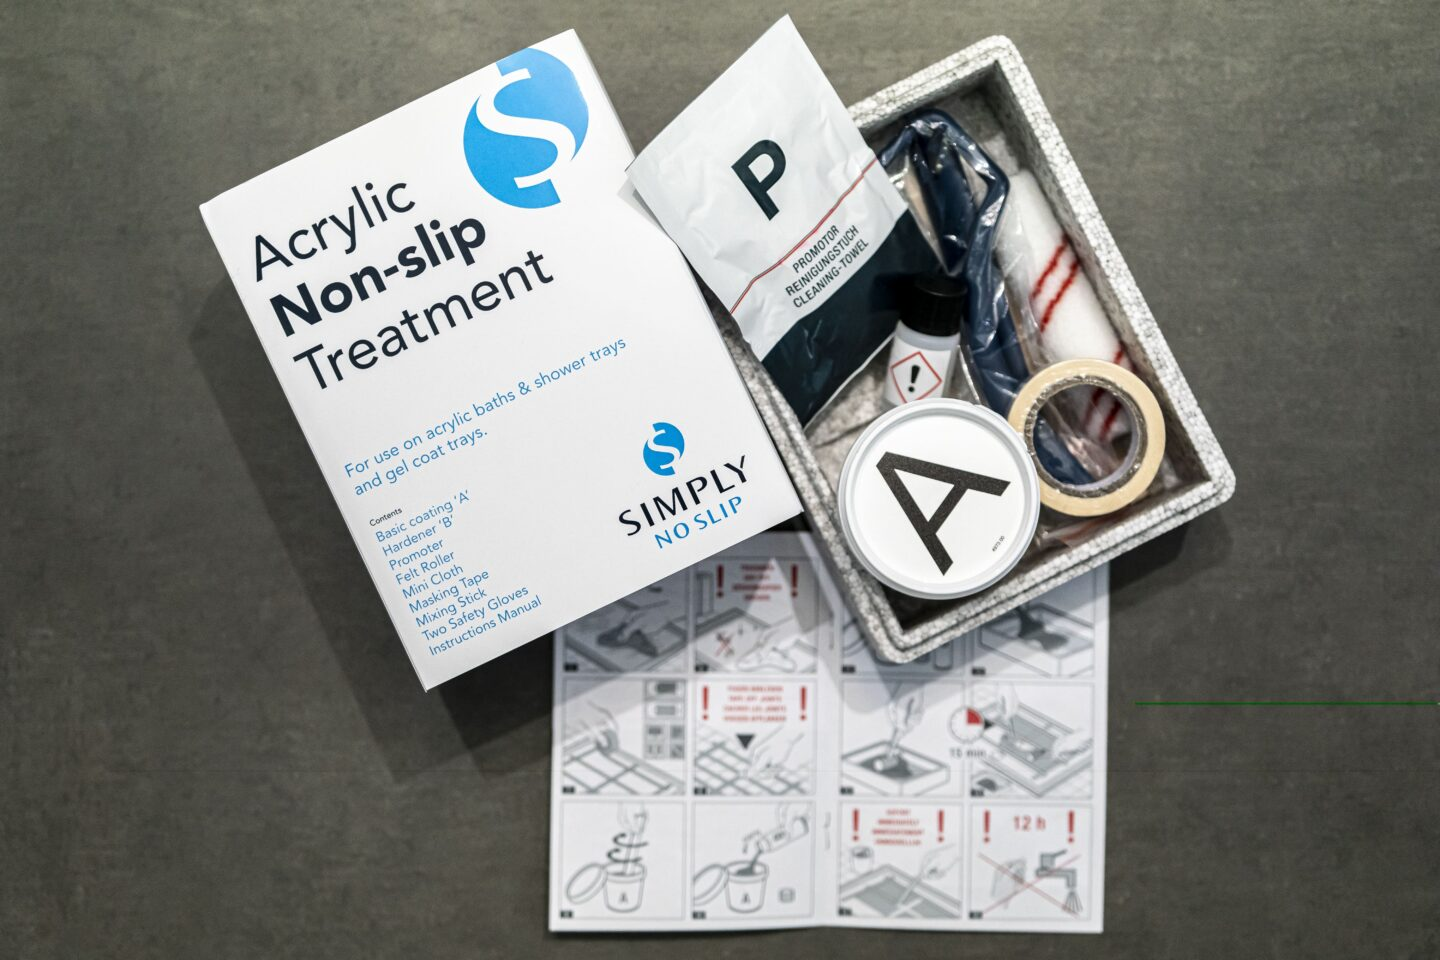 An open box showing the contents of the Acrylic Non Slip Treatment